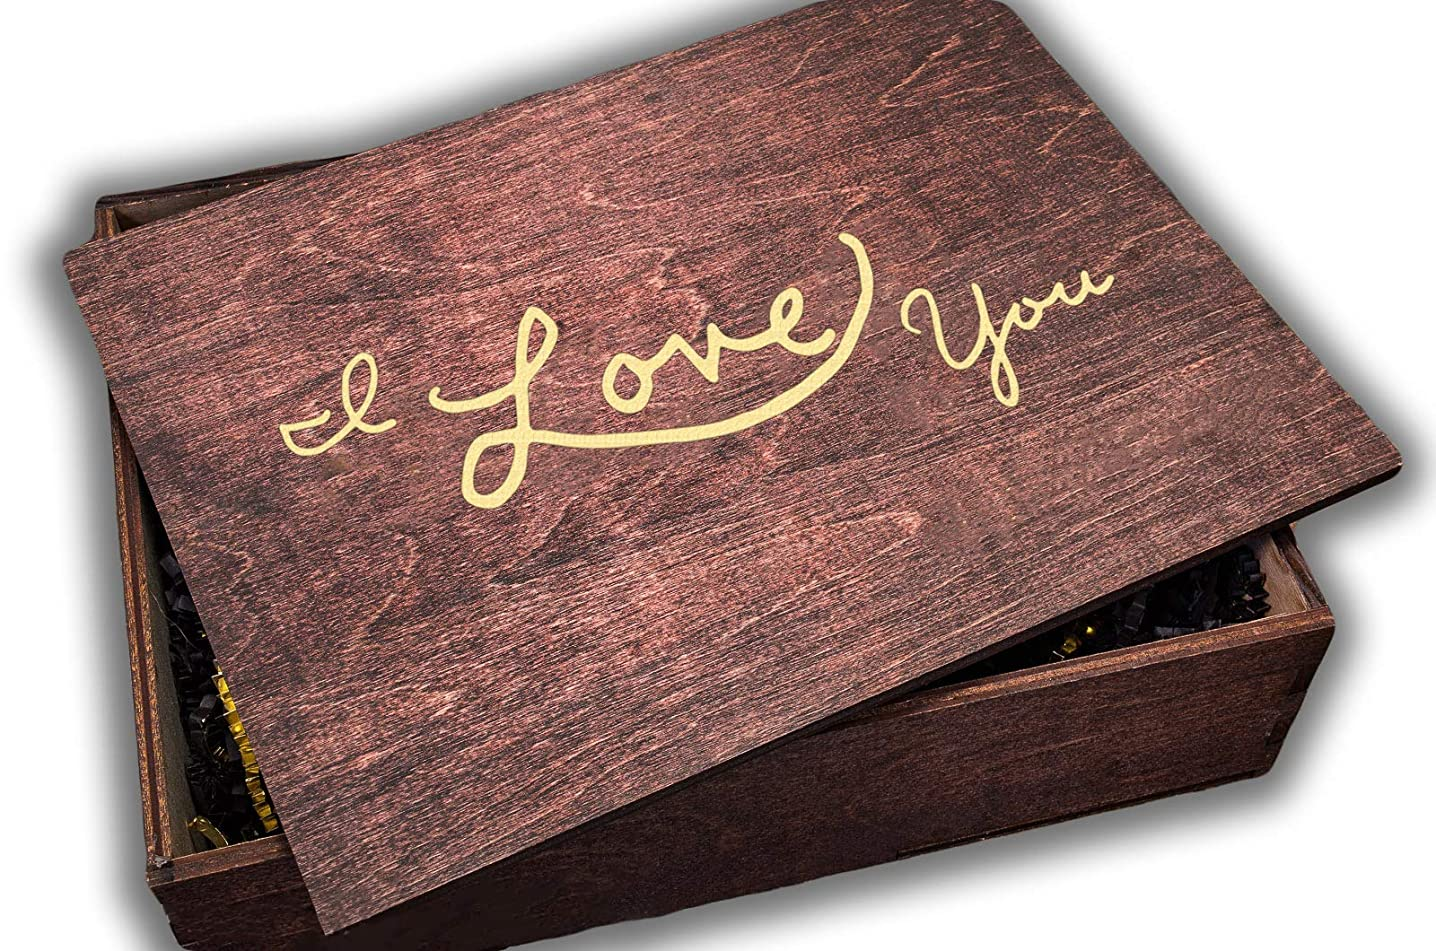 I Love You Wooden Gift Boxes with Lids, Great Gifts for Him or Her, Memory Keepsakes Box - Large Cigar Box